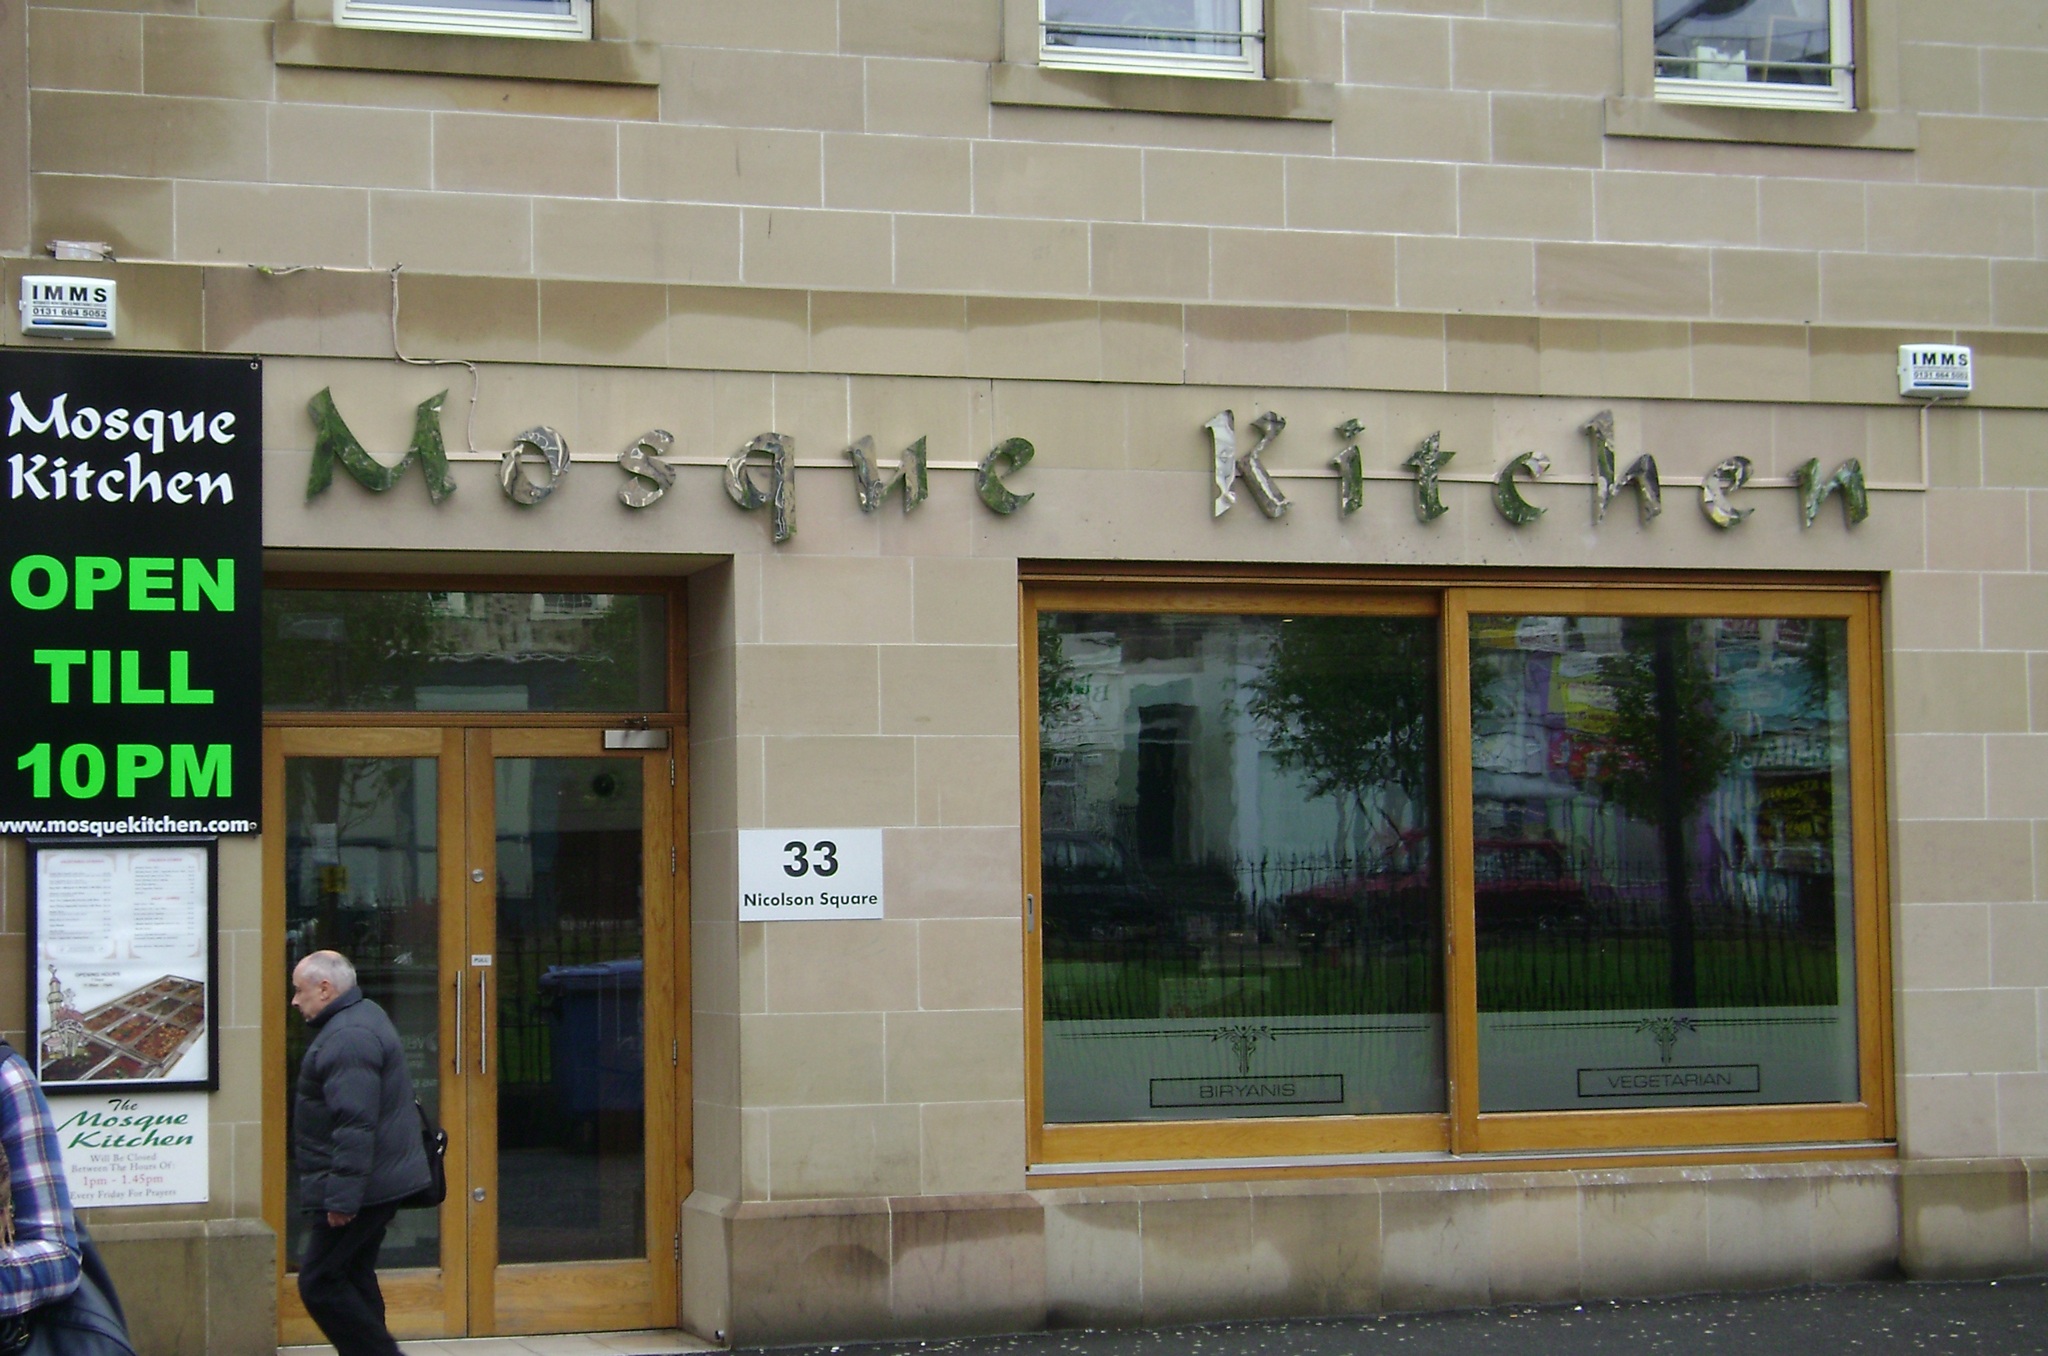 Mosque Kitchen, Edinburgh